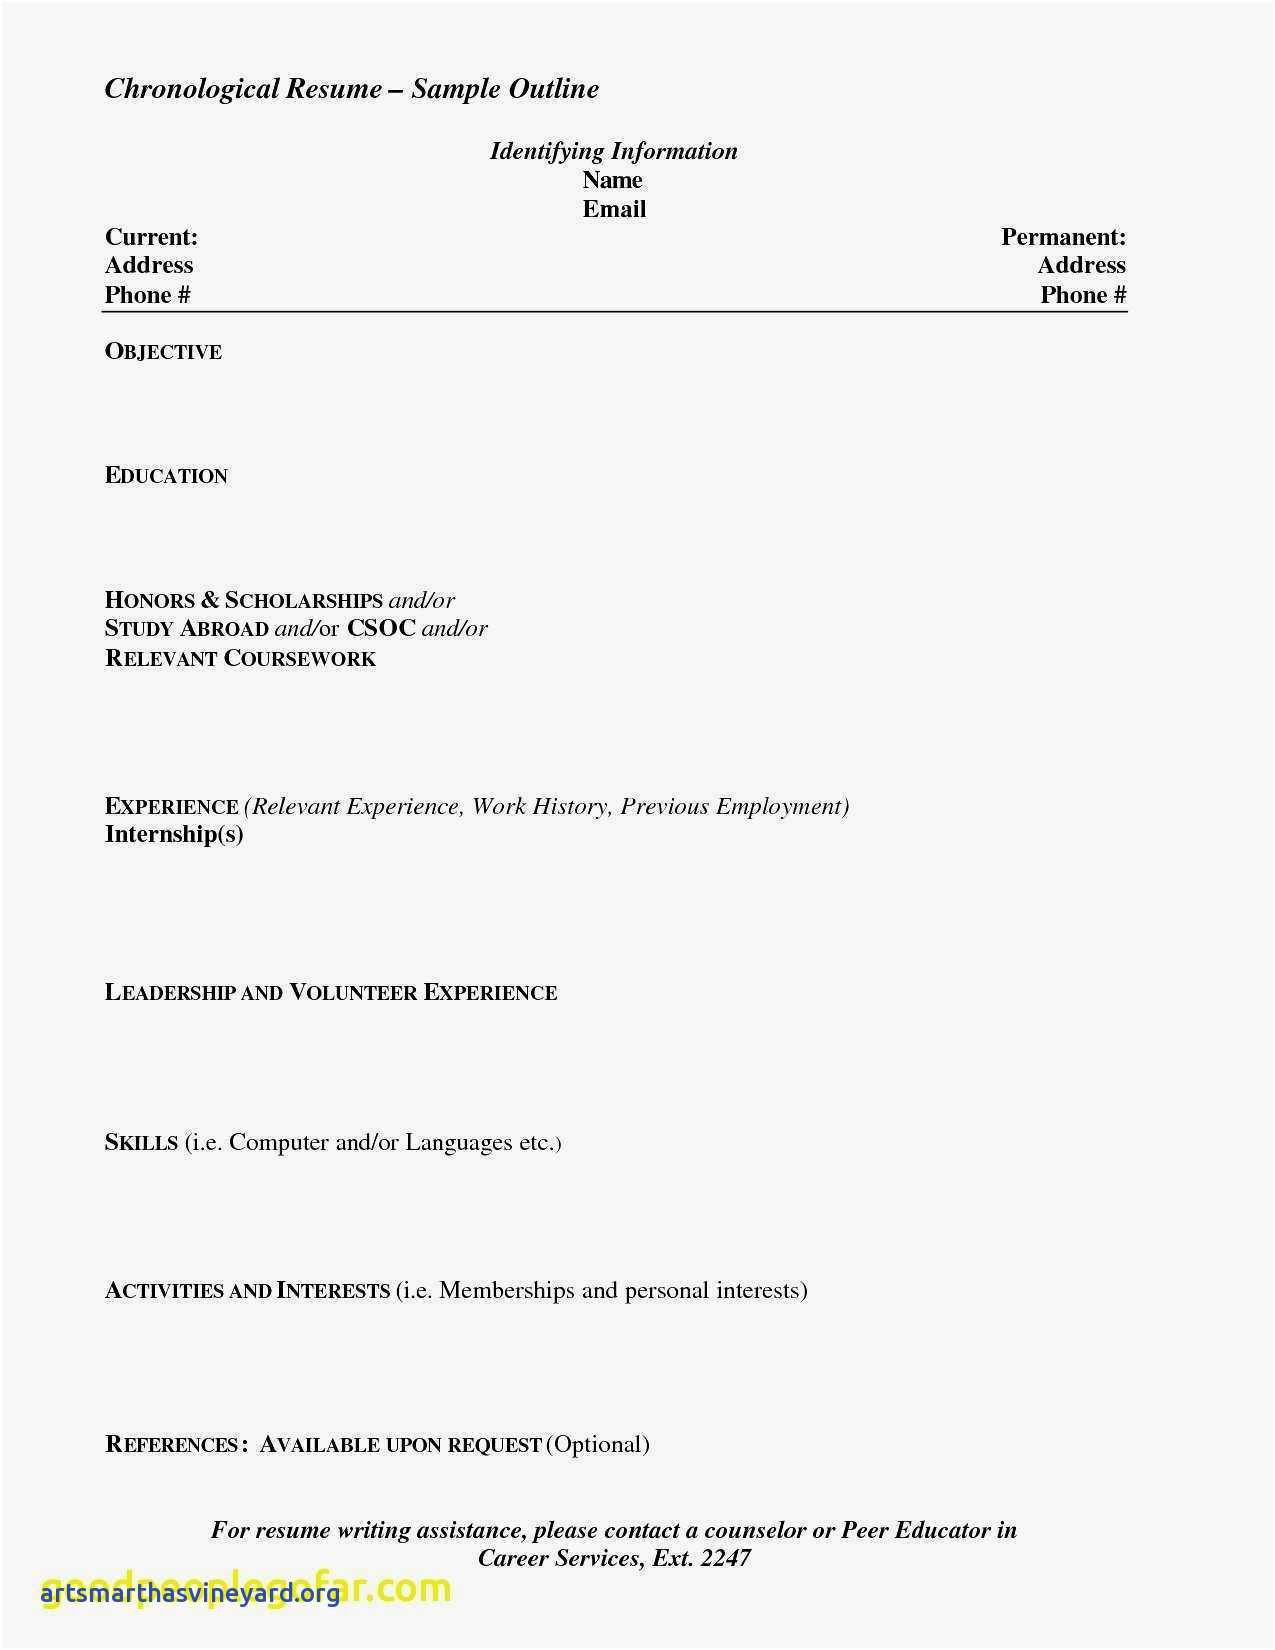 Resume for someone with No Experience - Resume Templates High School Students No Experience Simple Unique